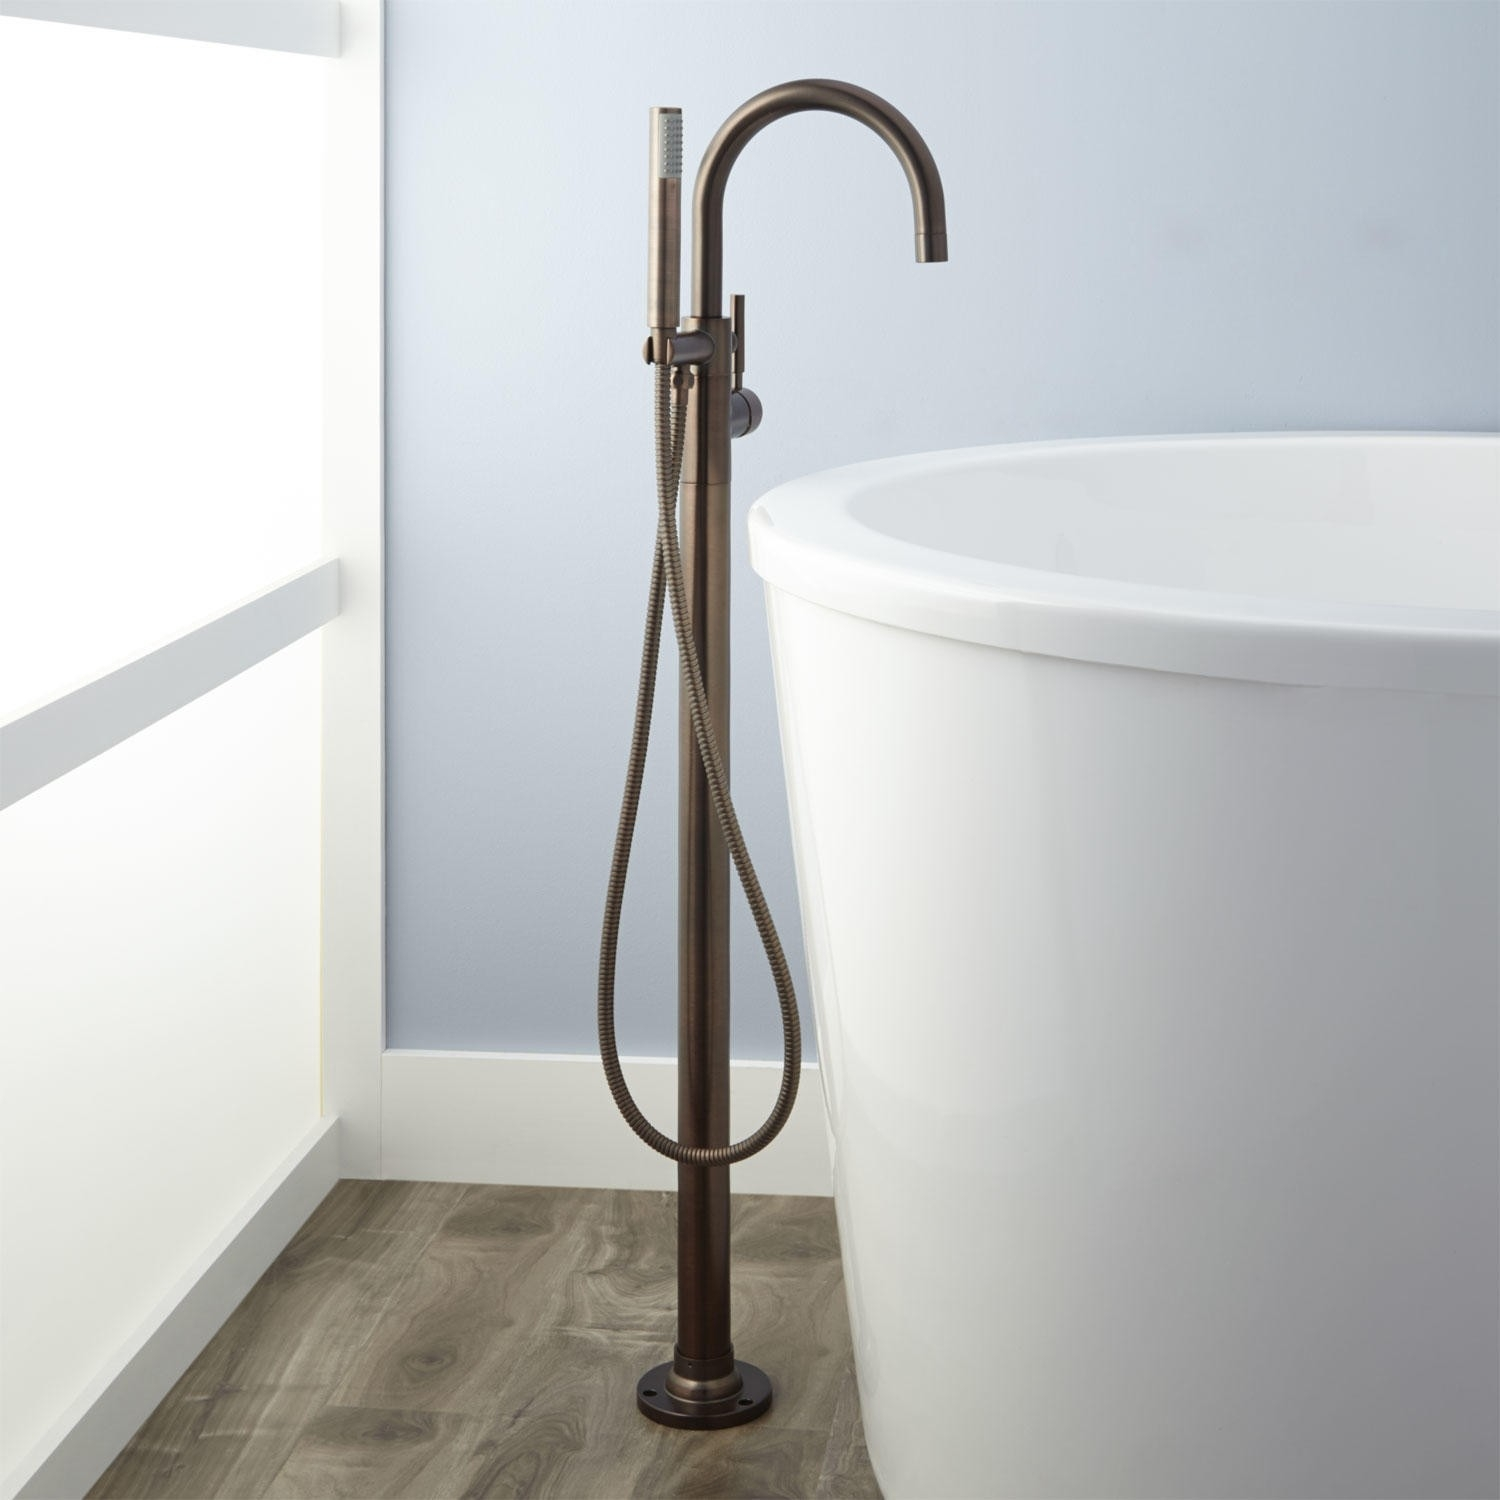 Ideas, simoni freestanding tub faucet and hand shower bathroom within dimensions 1500 x 1500  .